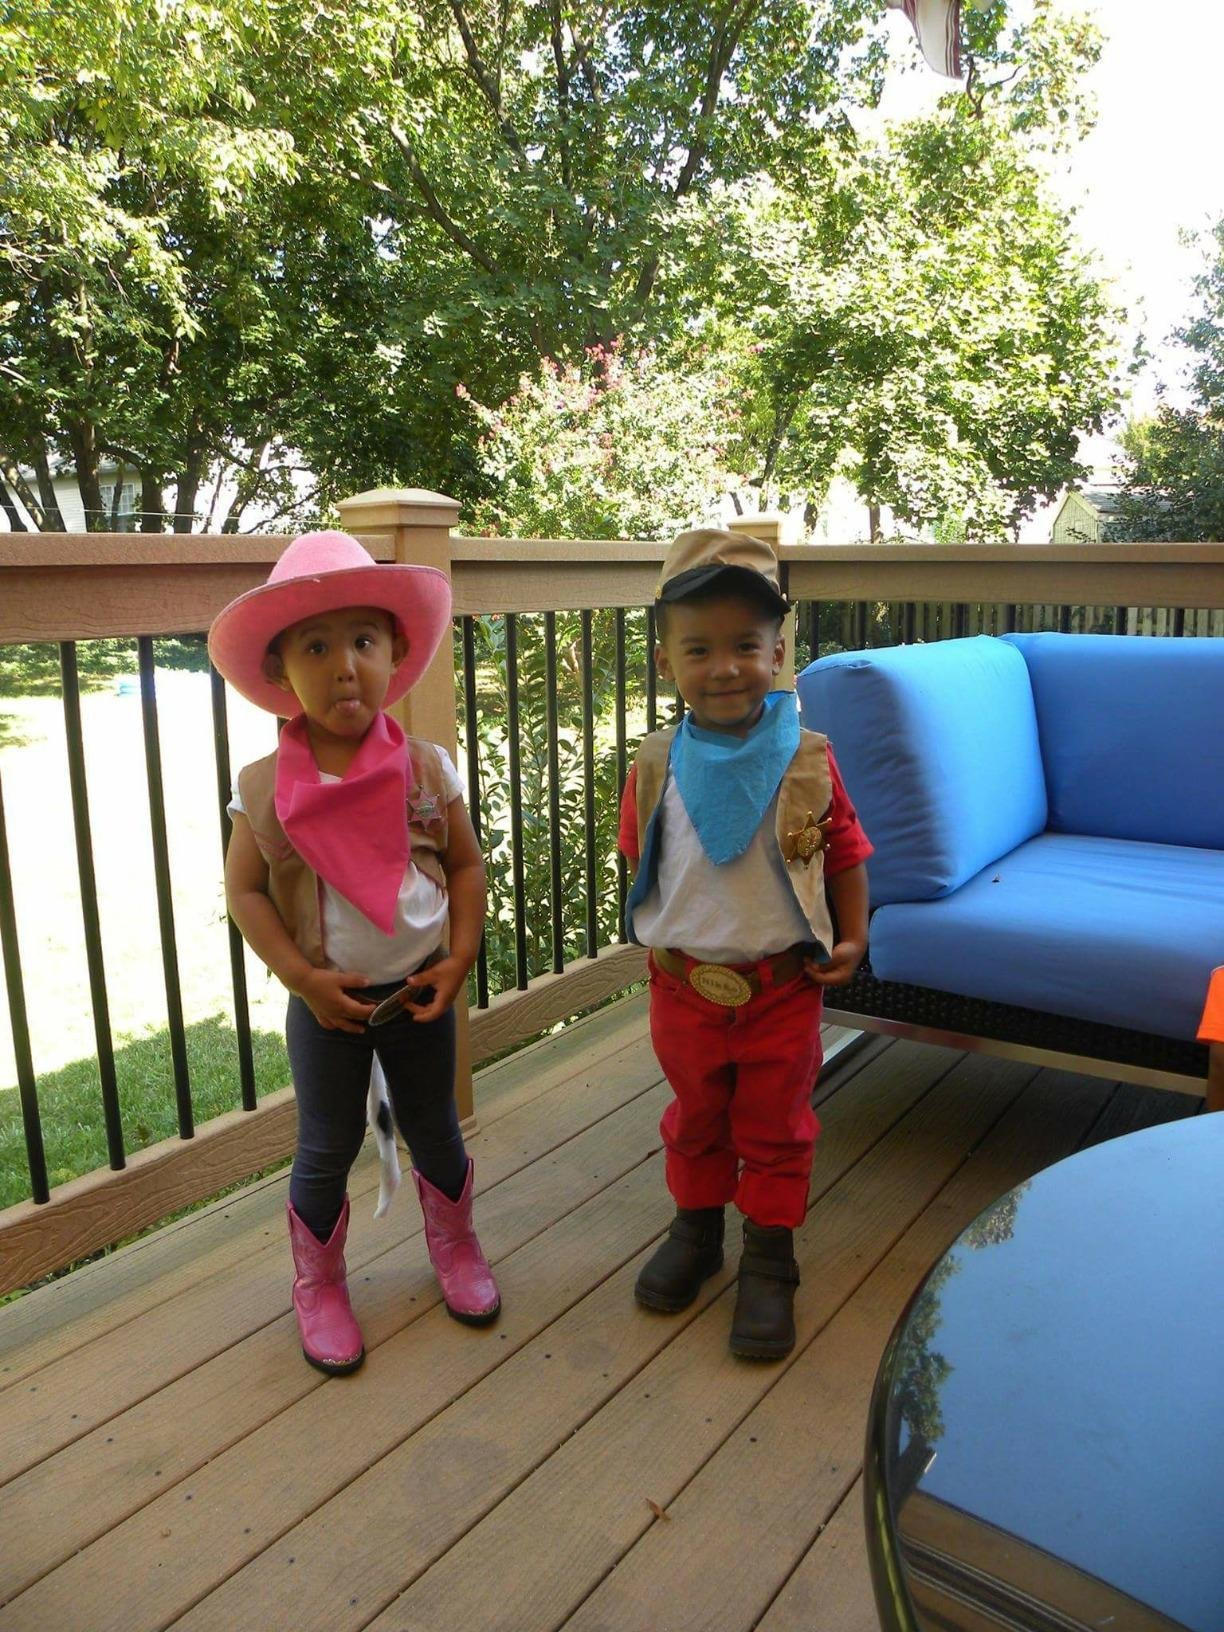 Cowboy Hat - Pink Child's Felt Classic Cowboy - Western Rodeo Hats for Kids by Rhode Island Novelty